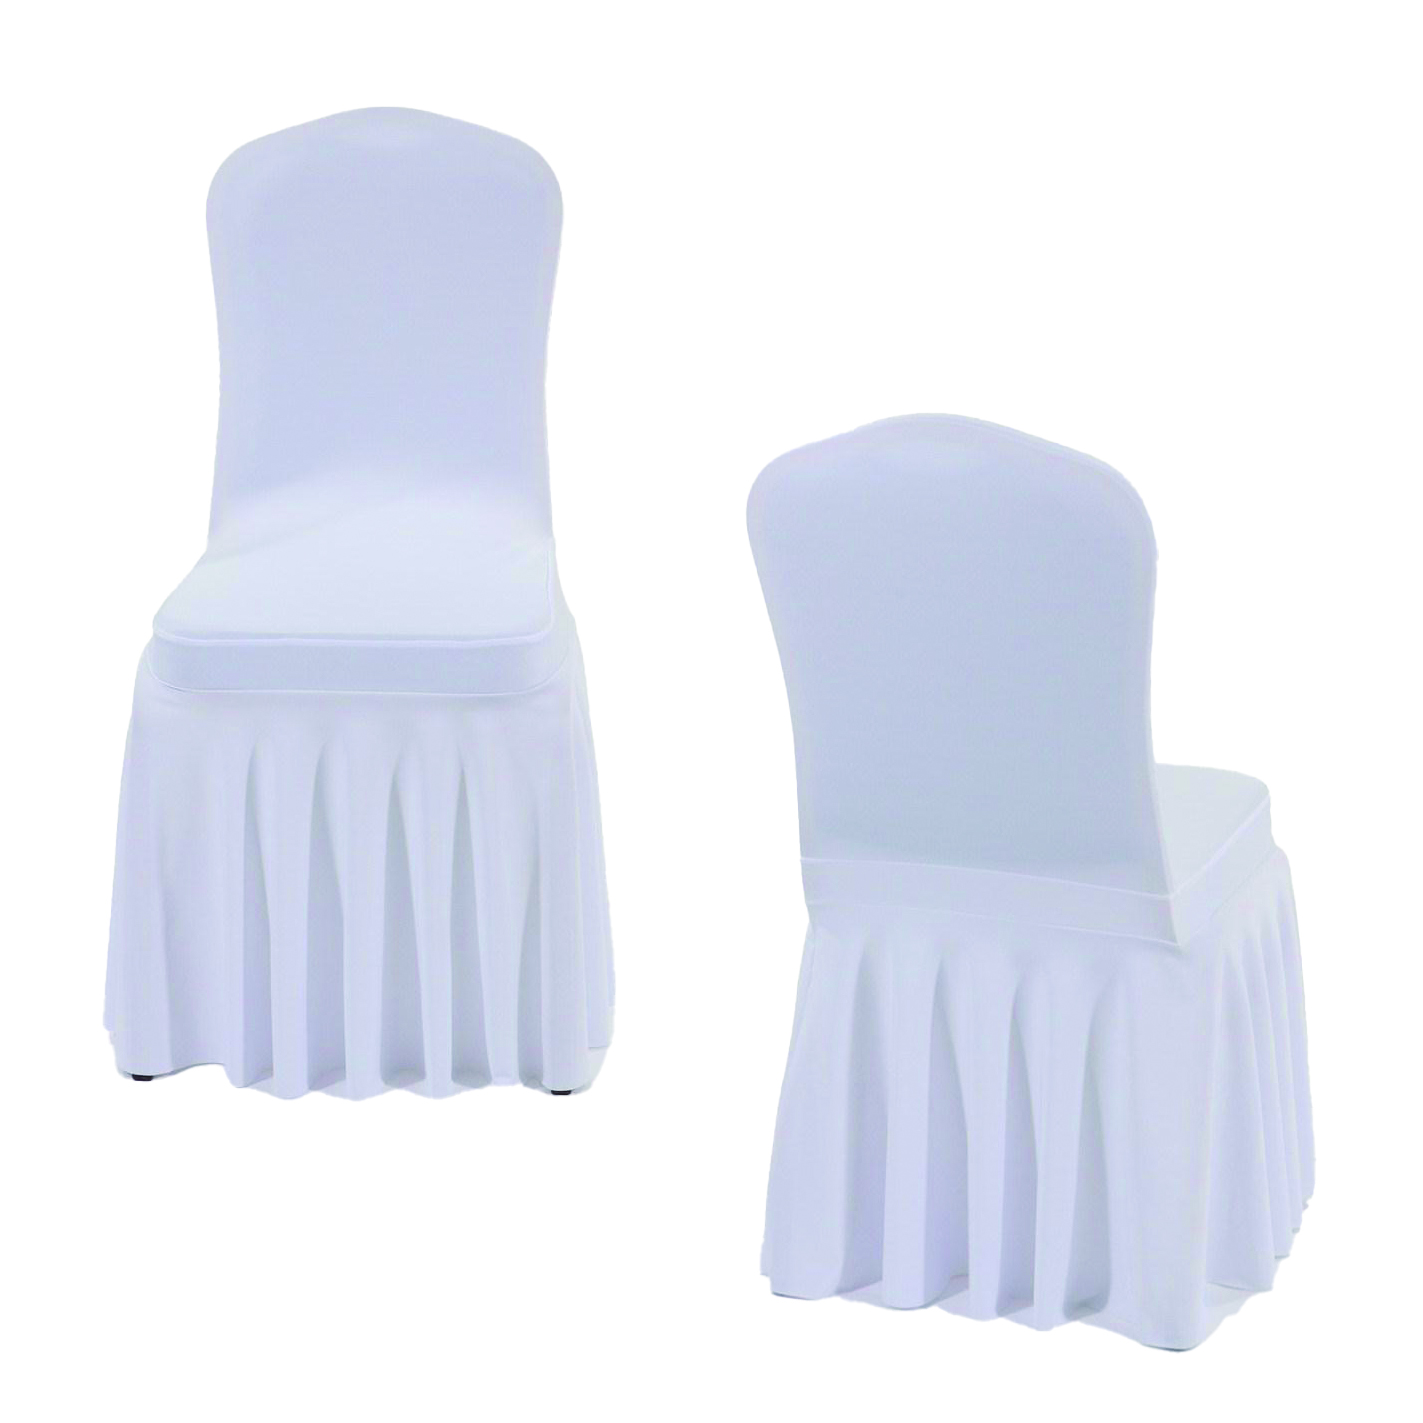 Stretch Chair cover,2 Pieces, Customers' request